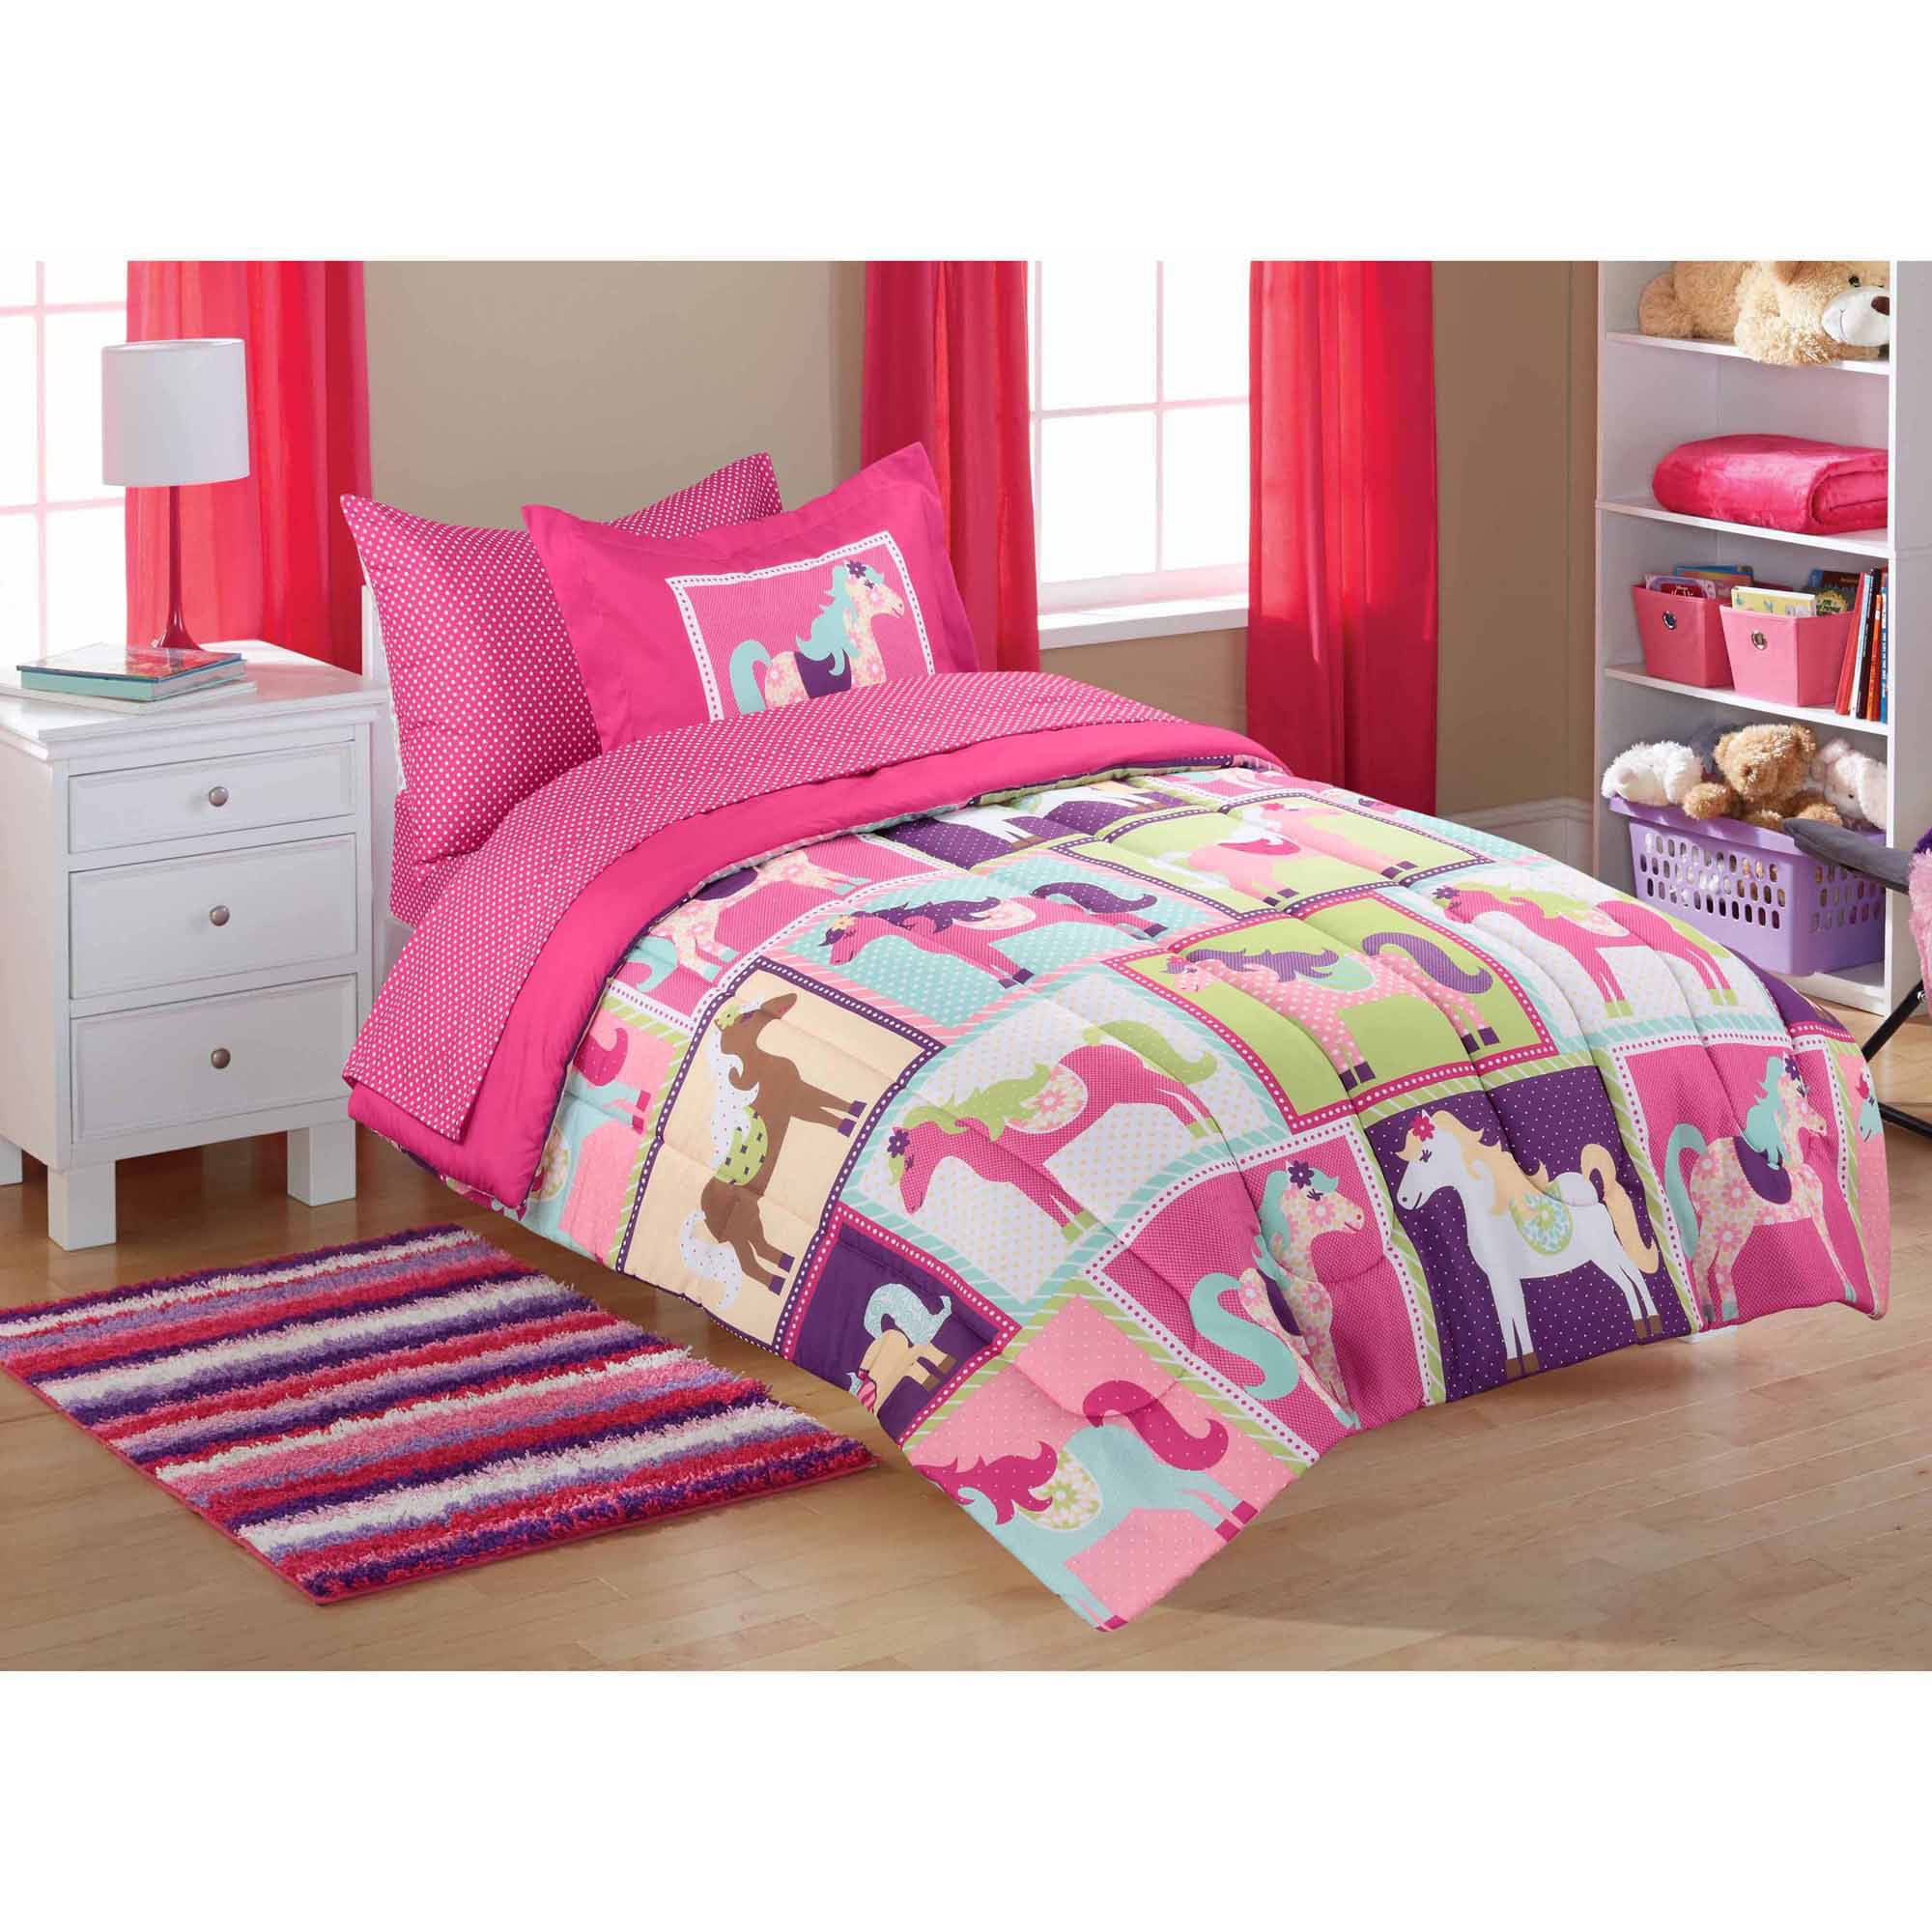 large bedding for p print pu girls set zebra additional queen purple images twin comforter